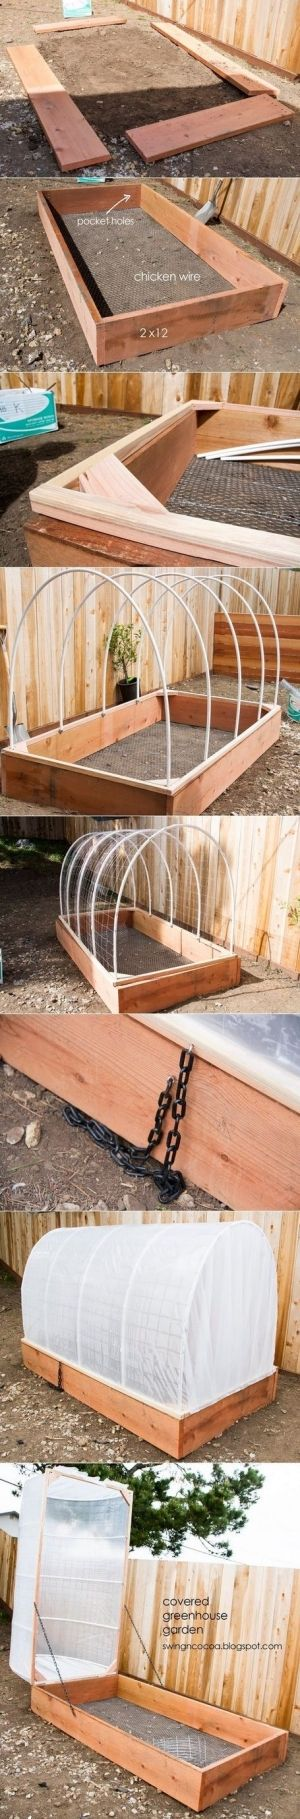 Building a Small Greenhouse by maria.t.rogers